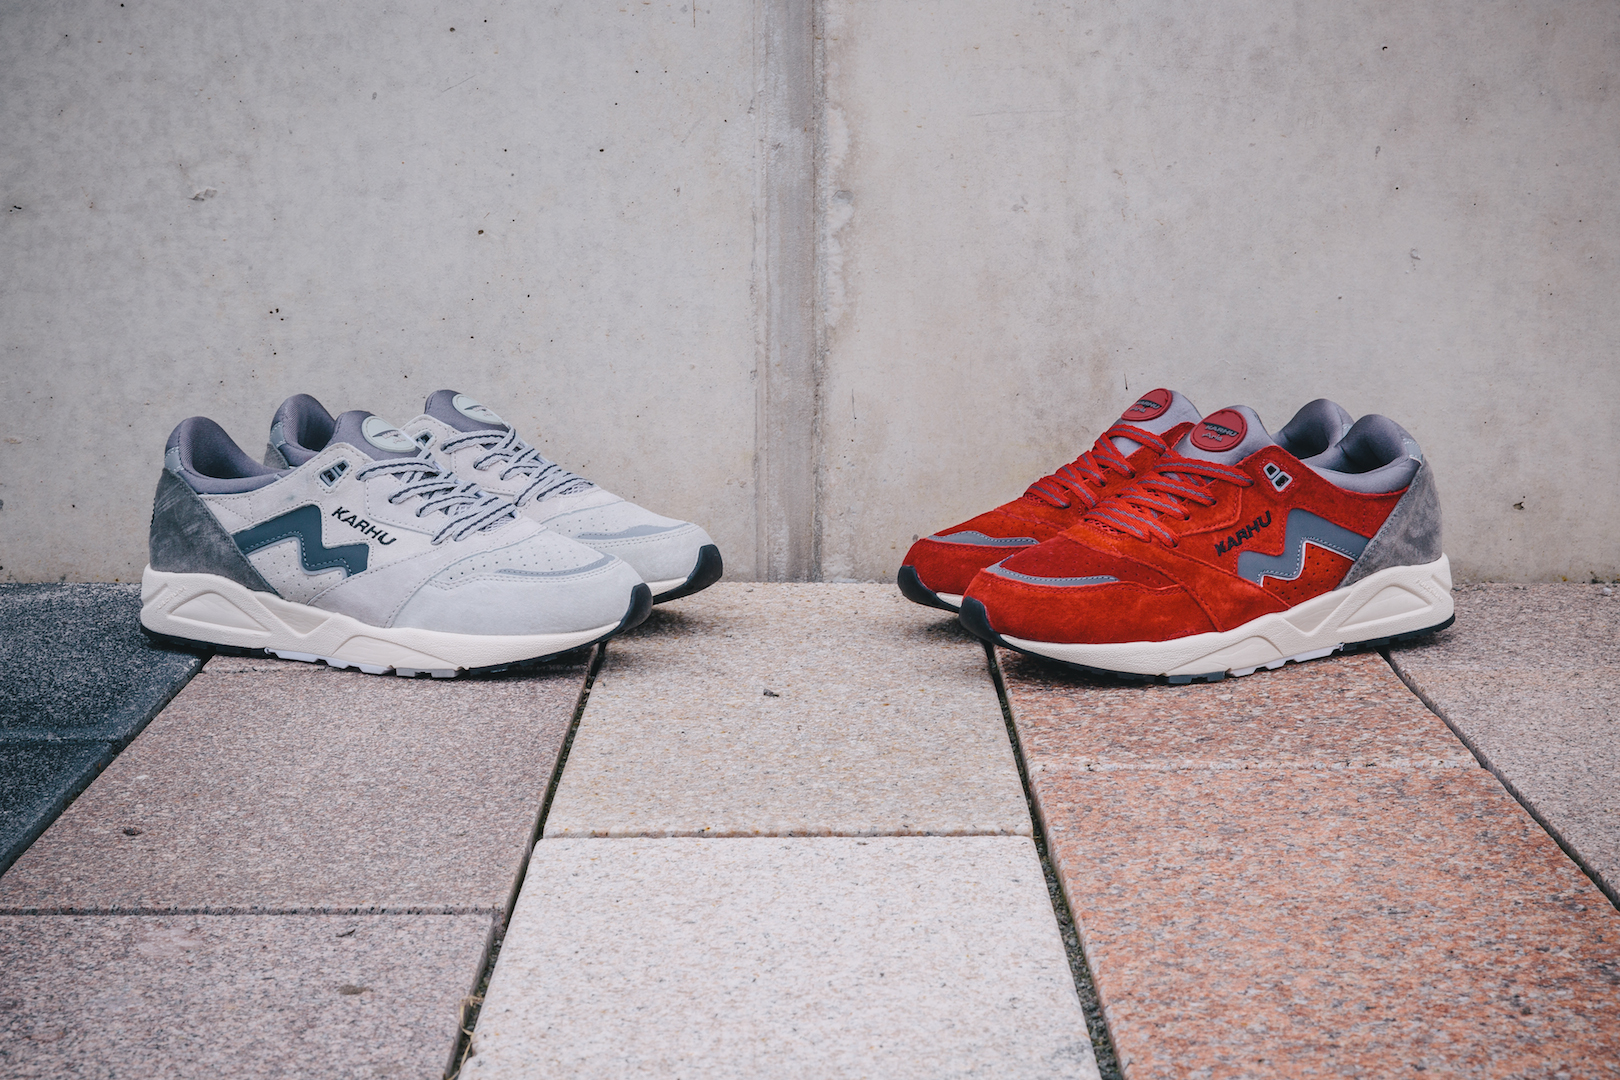 Karhu Aria 'Polar Night' Pack2